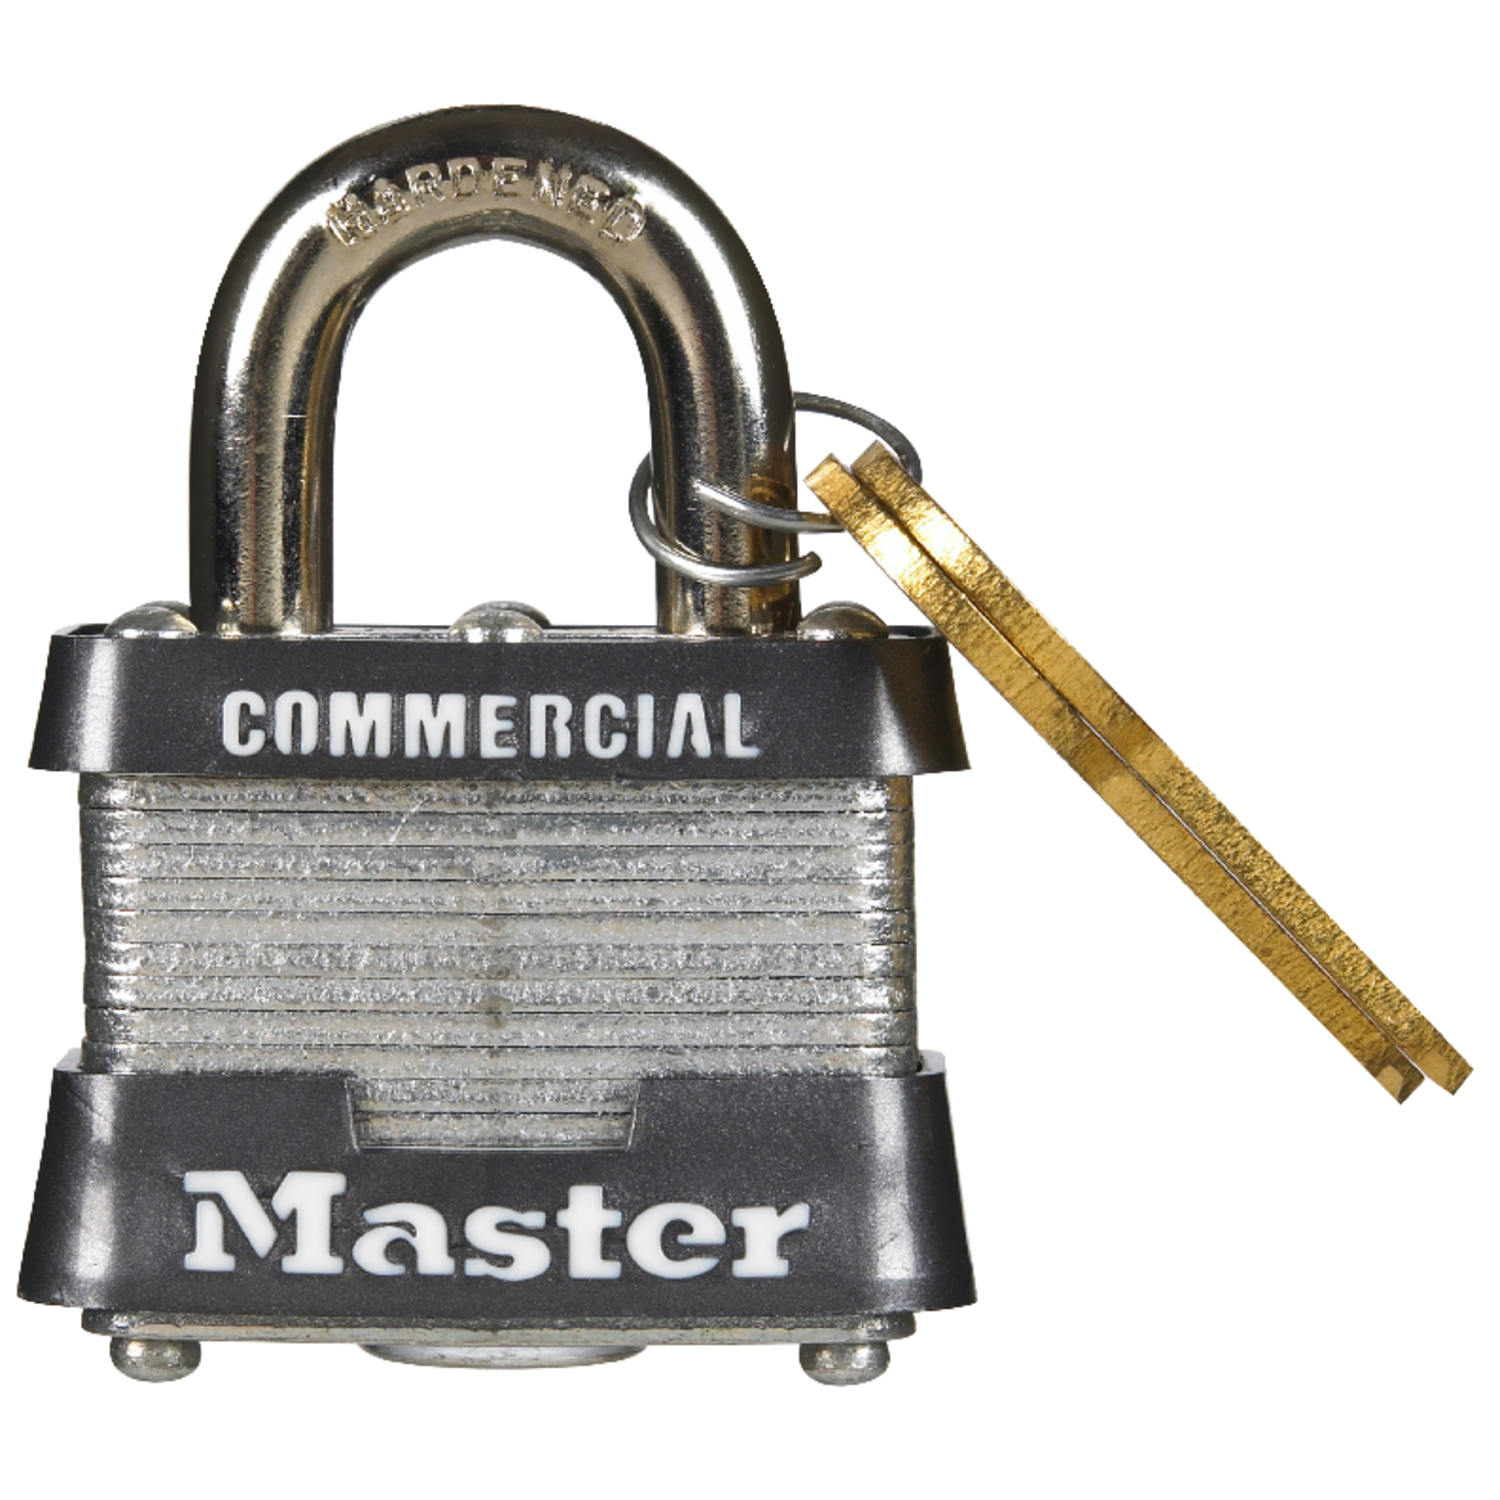 Master Lock  1-5/16 in. H x 1-5/8 in. W Steel  Padlock  6 pk Keyed Alike Double Locking